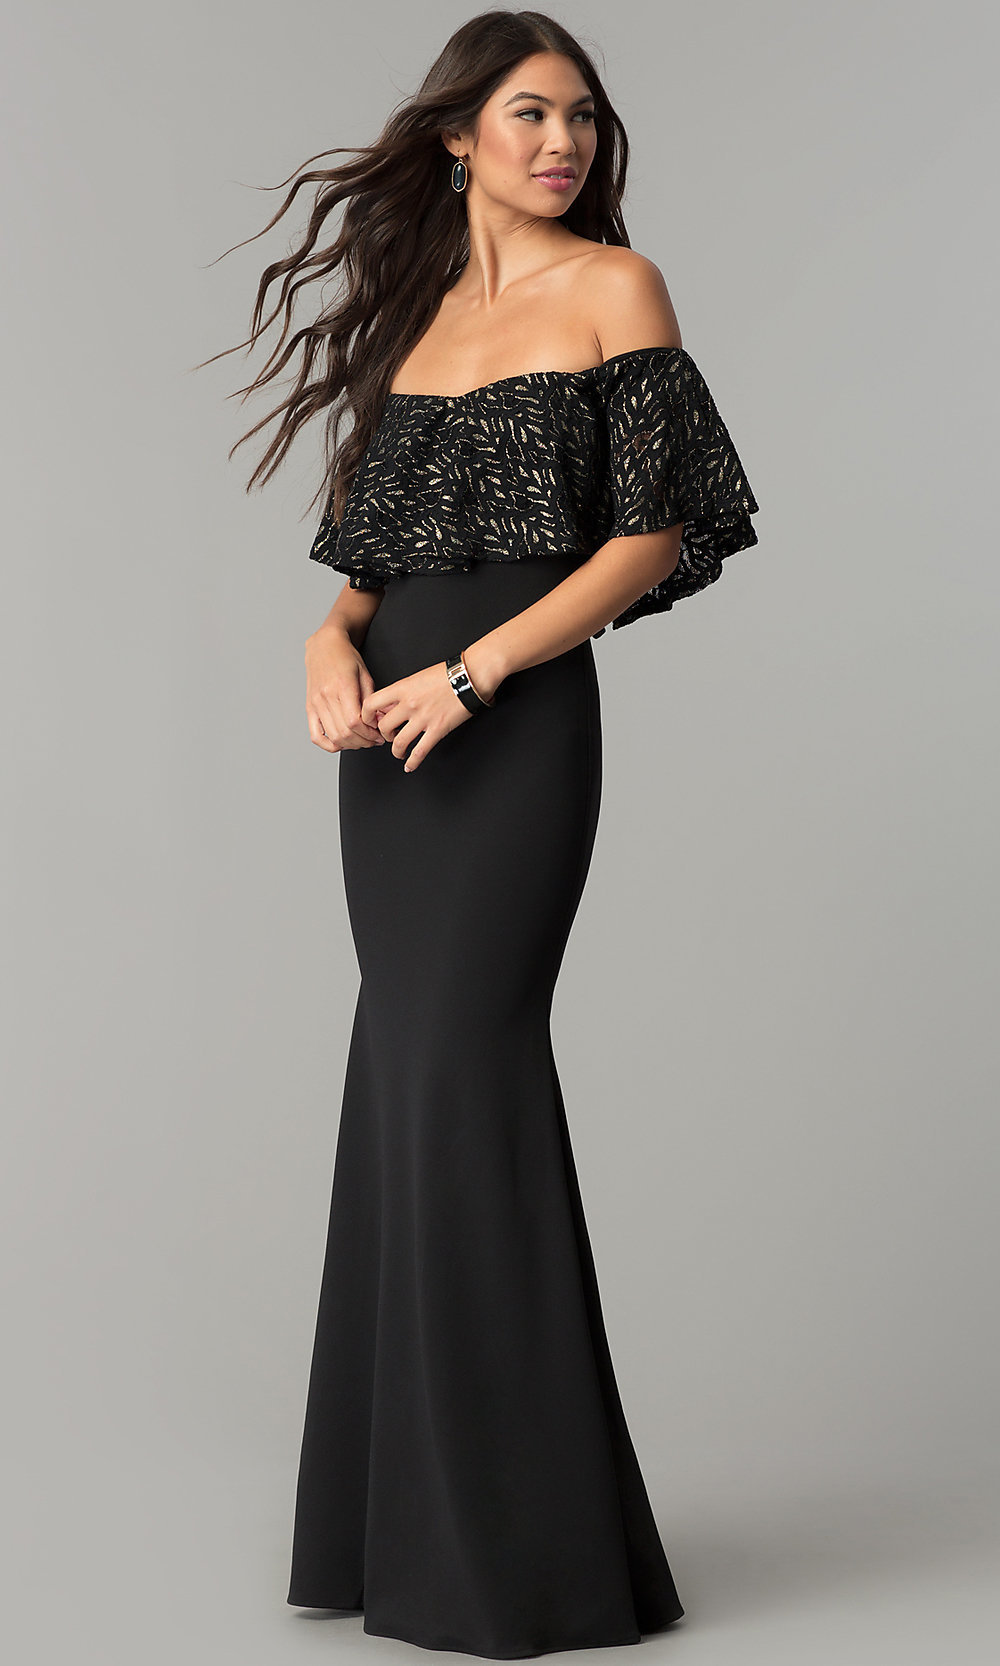 79fb865388034 Long Black Glitter Evening Dress